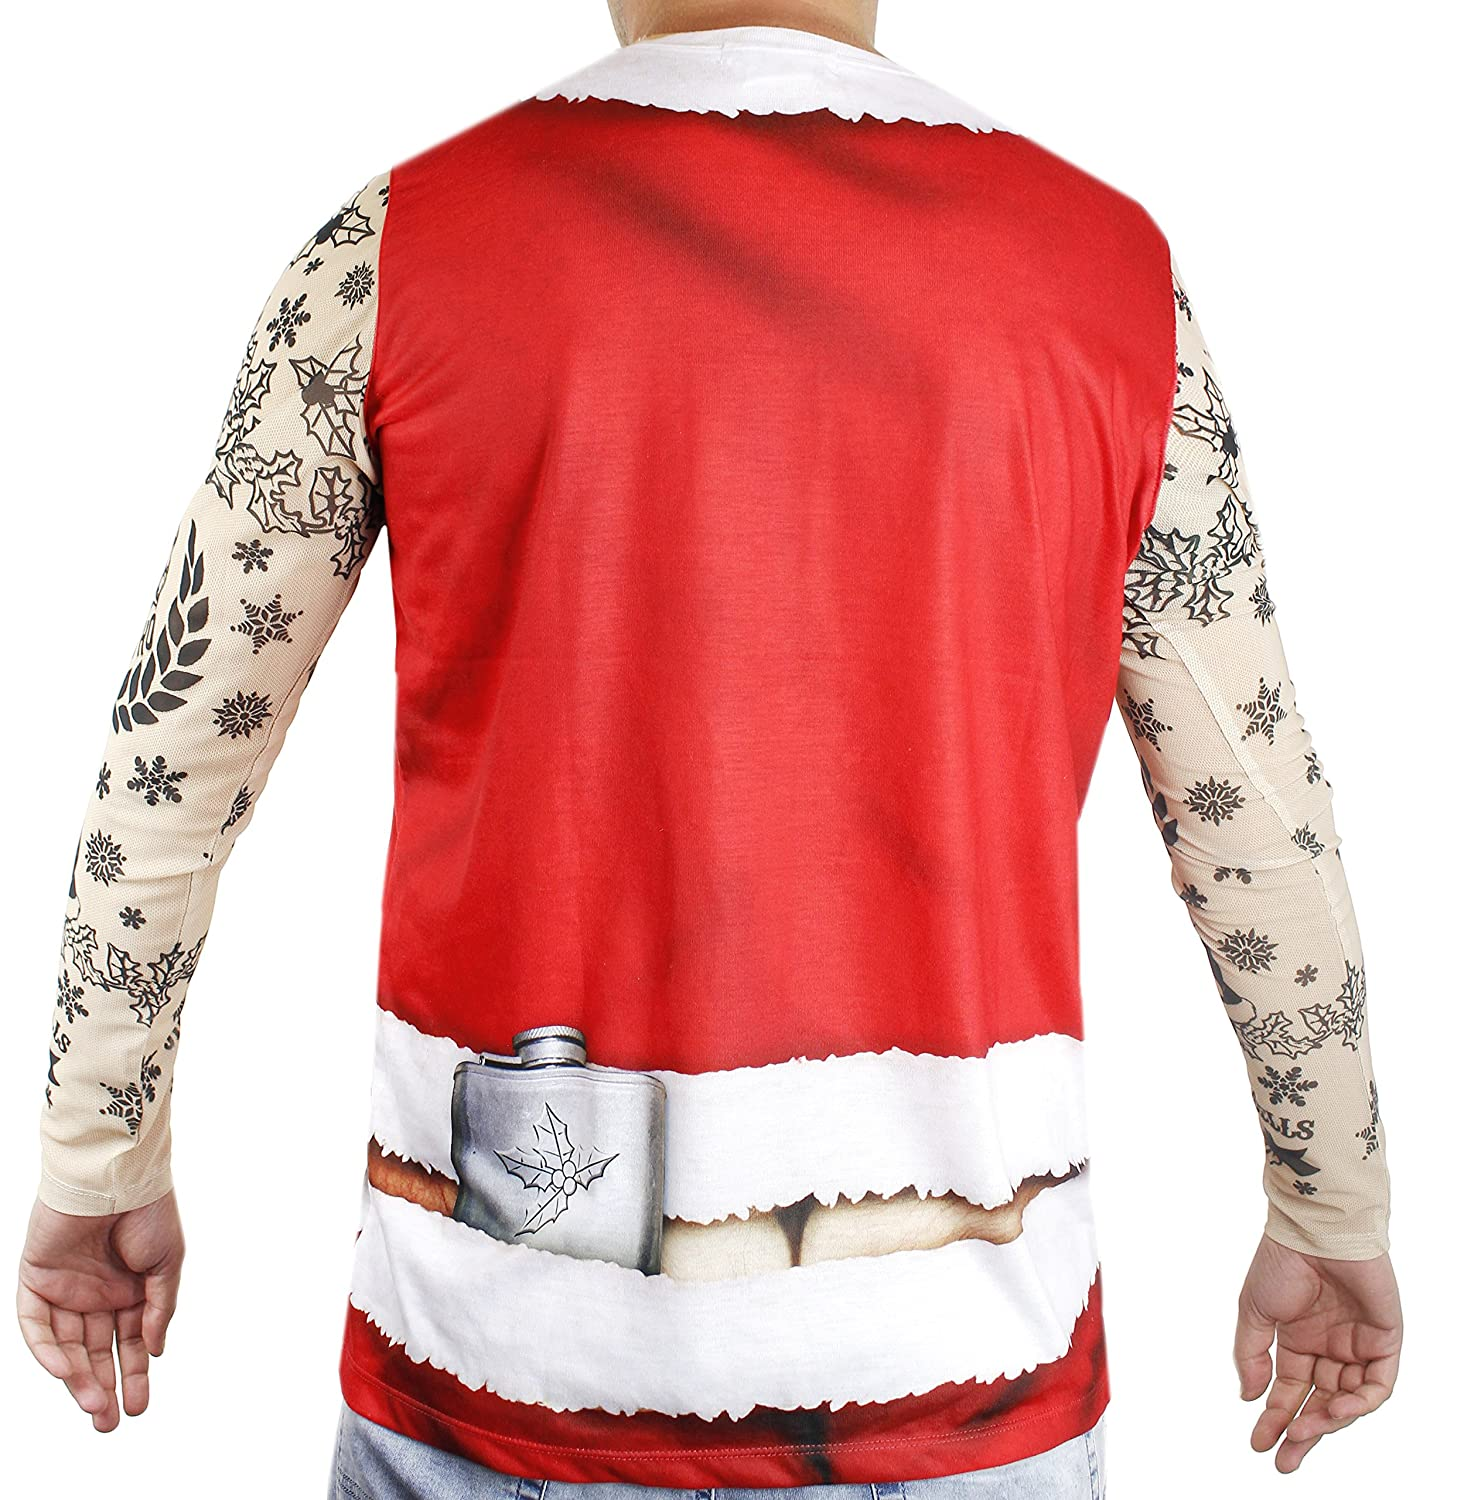 Adult Size Small Faux Real Xmas Tattoo Santa Suit Printed T-Shirt